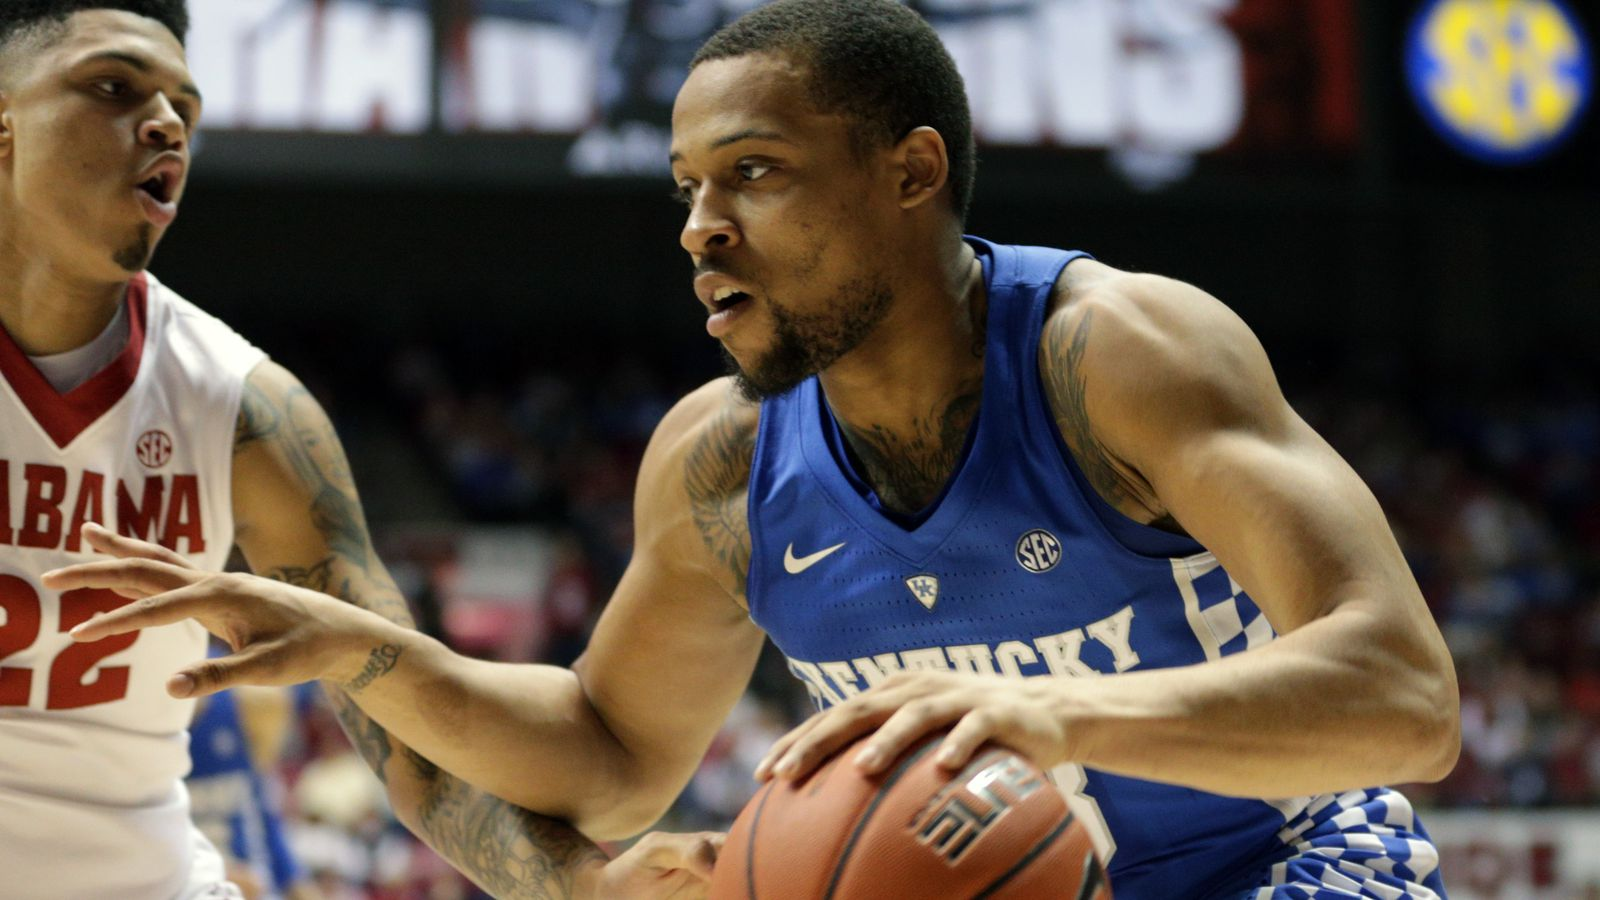 Kentucky Basketball Highlights And Box Score From Historic: Kentucky Basketball Highlights And Box Score From Win At